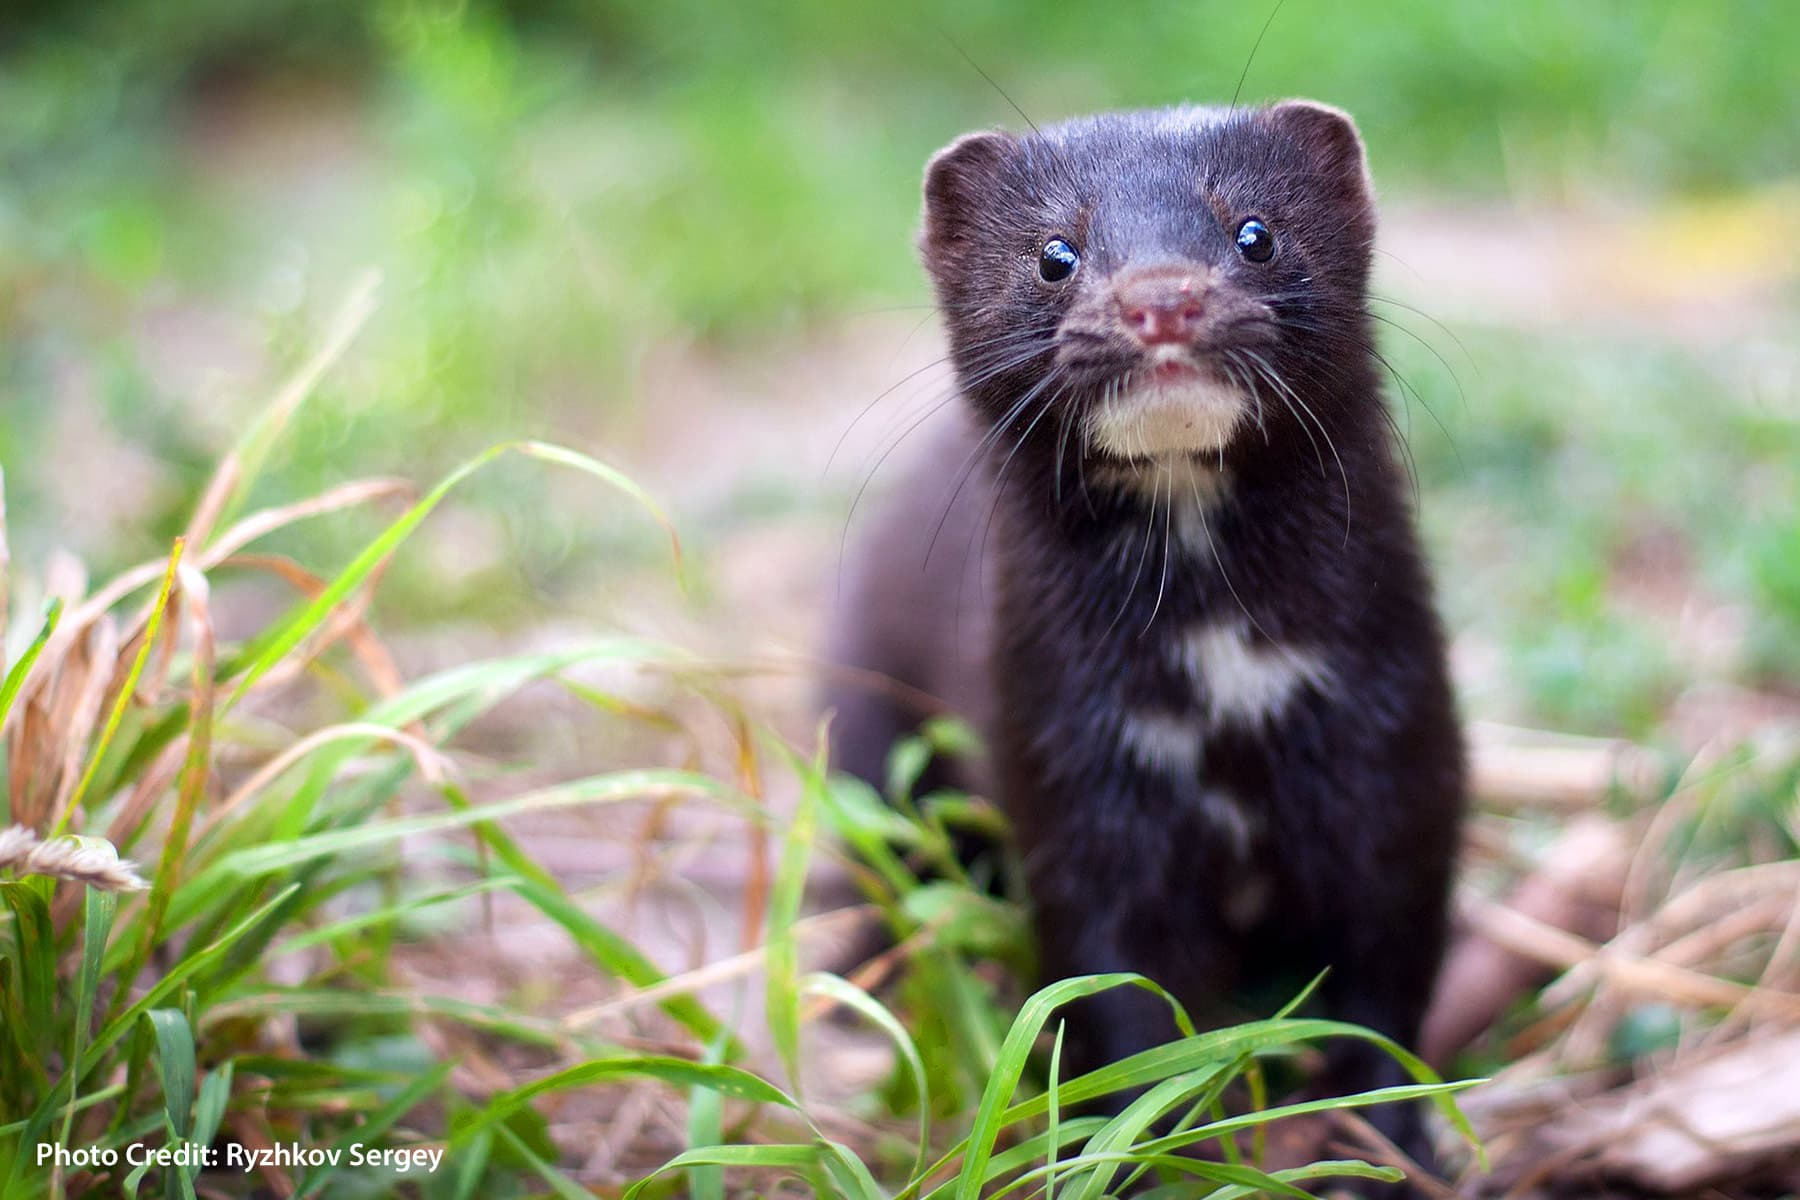 COVID in Minks Spreading to Humans